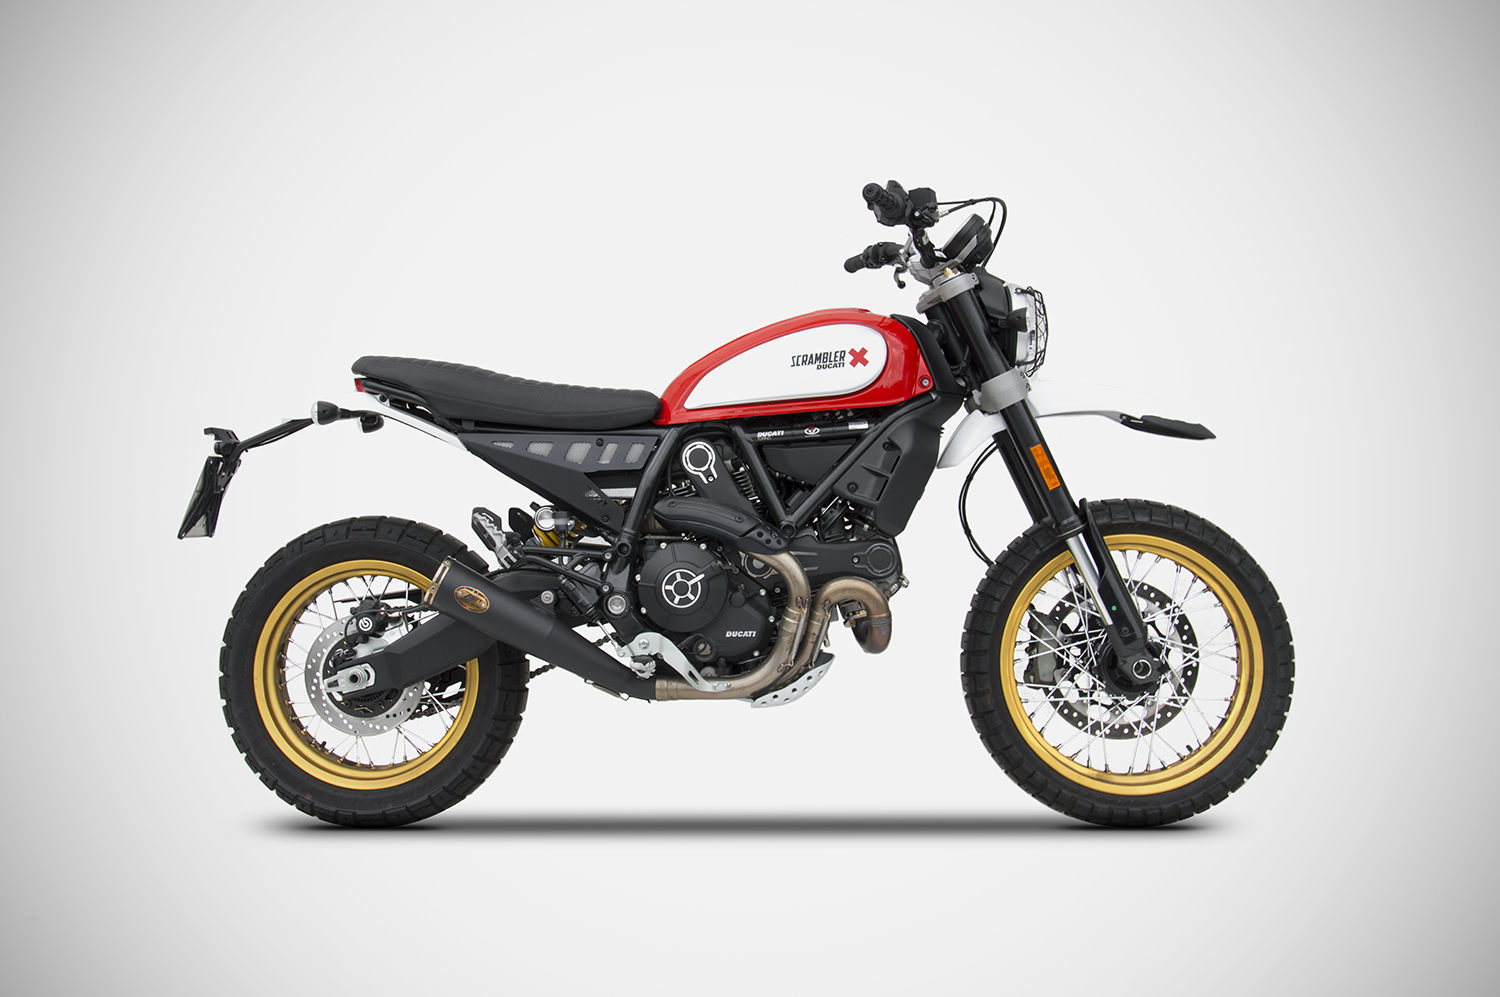 ducati scrambler 800 desert sled euro 4 online shop. Black Bedroom Furniture Sets. Home Design Ideas